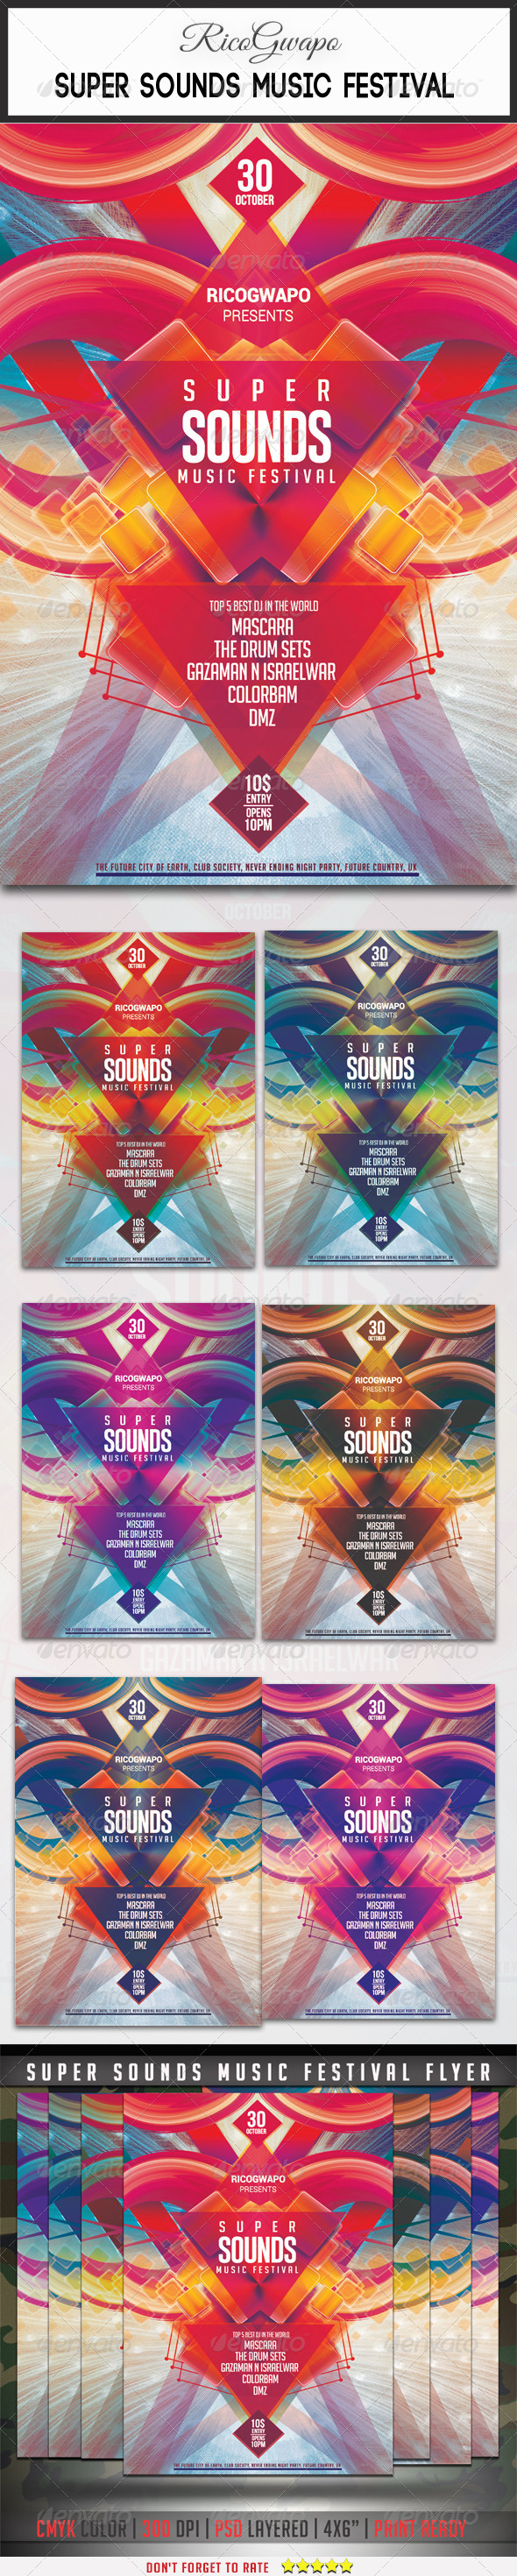 GraphicRiver Super Sounds Music Festival Flyer Template 8562614